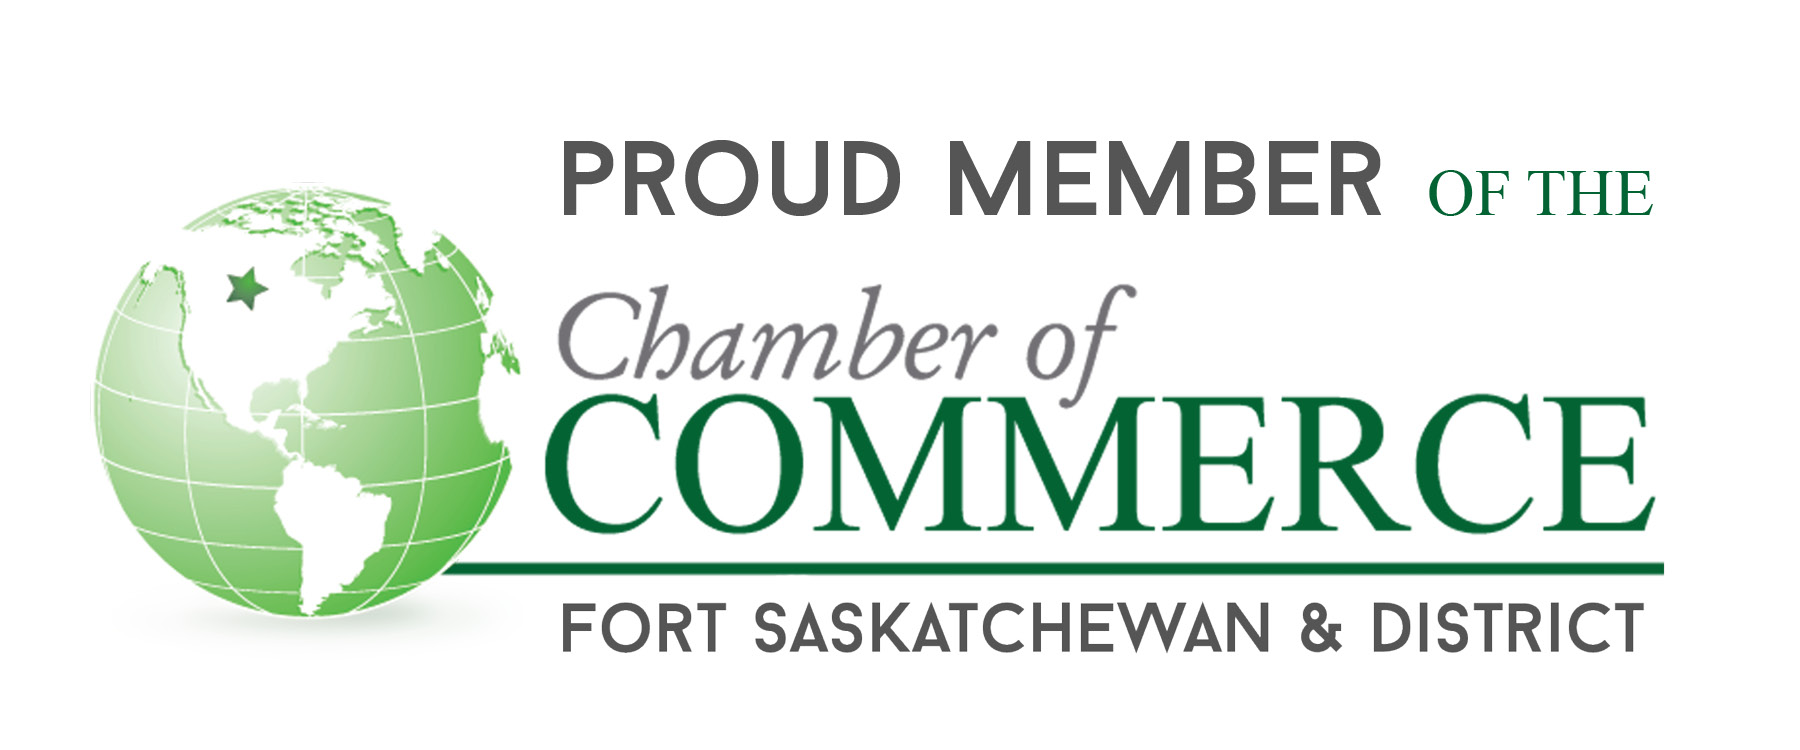 proud member of the chamber of commerce